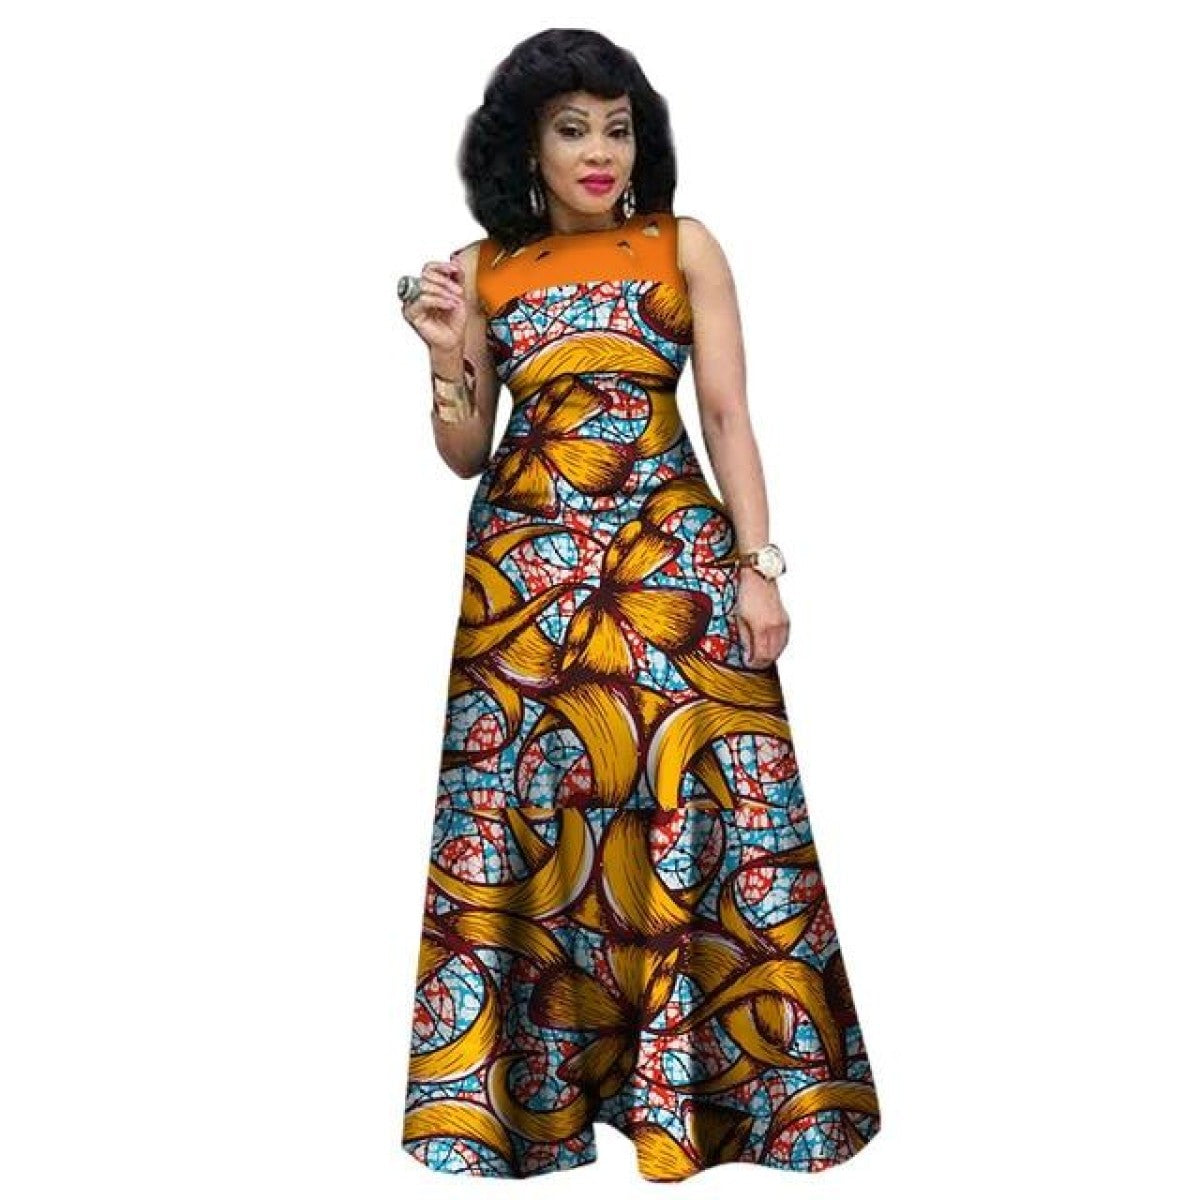 African Print Fashion: African Clothing Sleeveless Sexy Long Dress Women Cotton